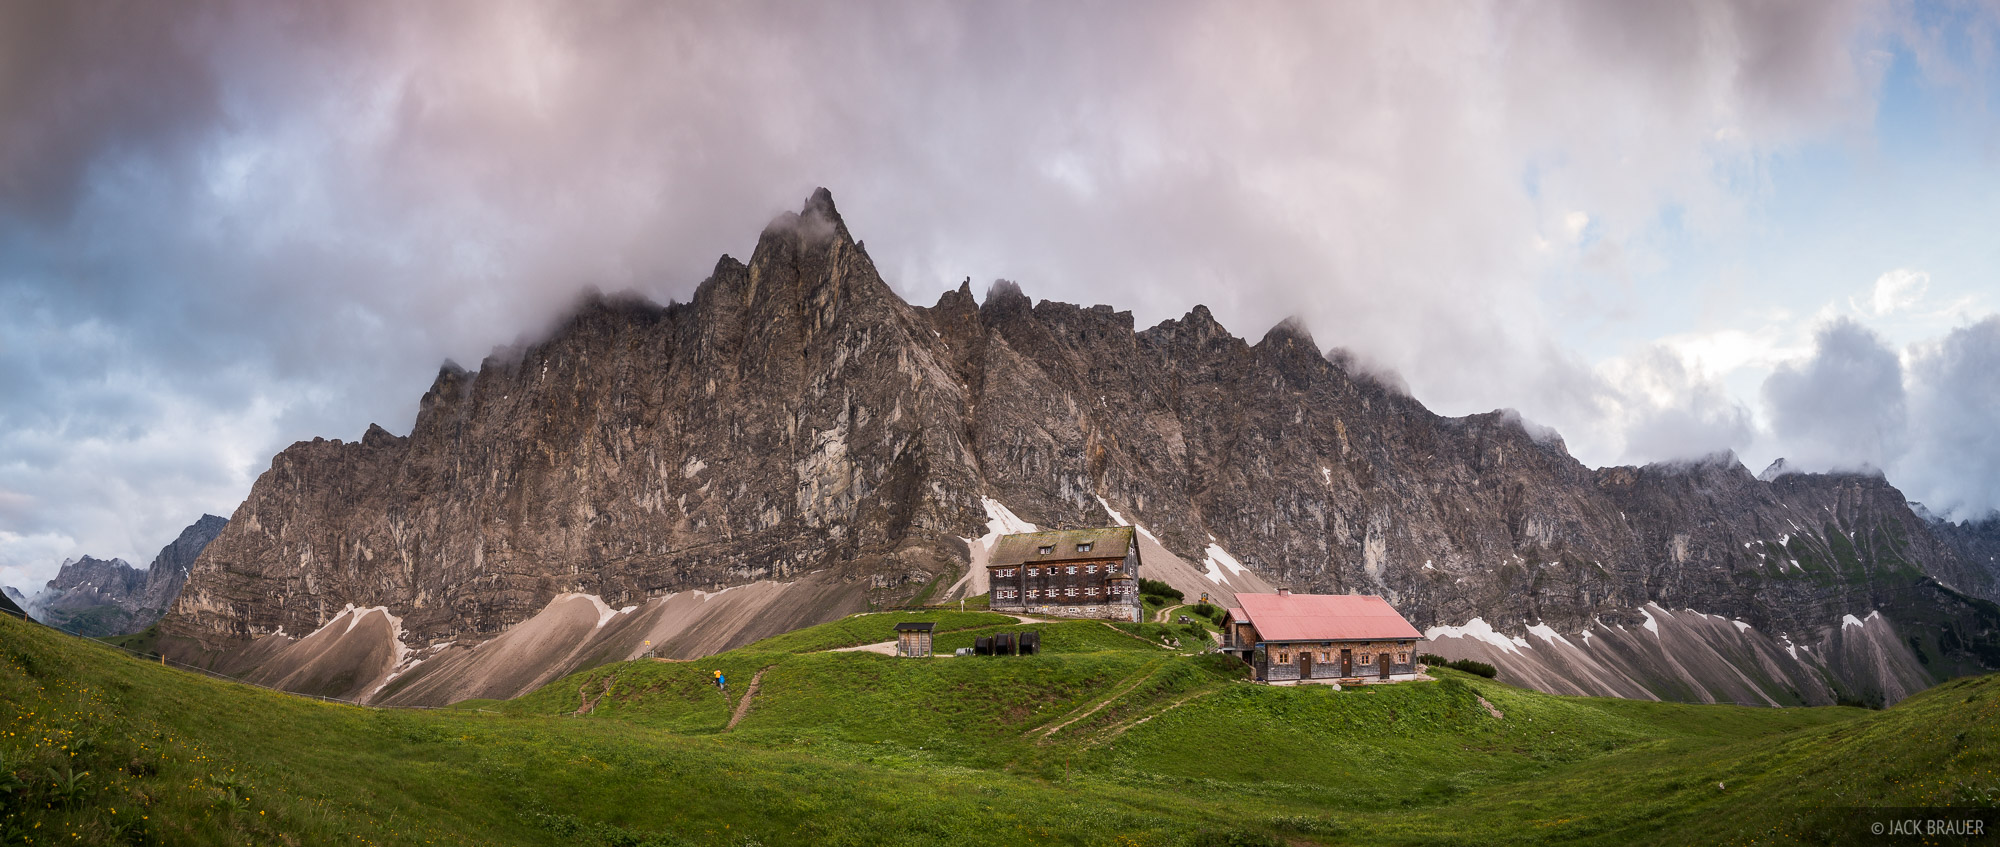 A panoramic view of Laliderer Spitze and the Karwendel mountains above the Falkenhütte at sunset.